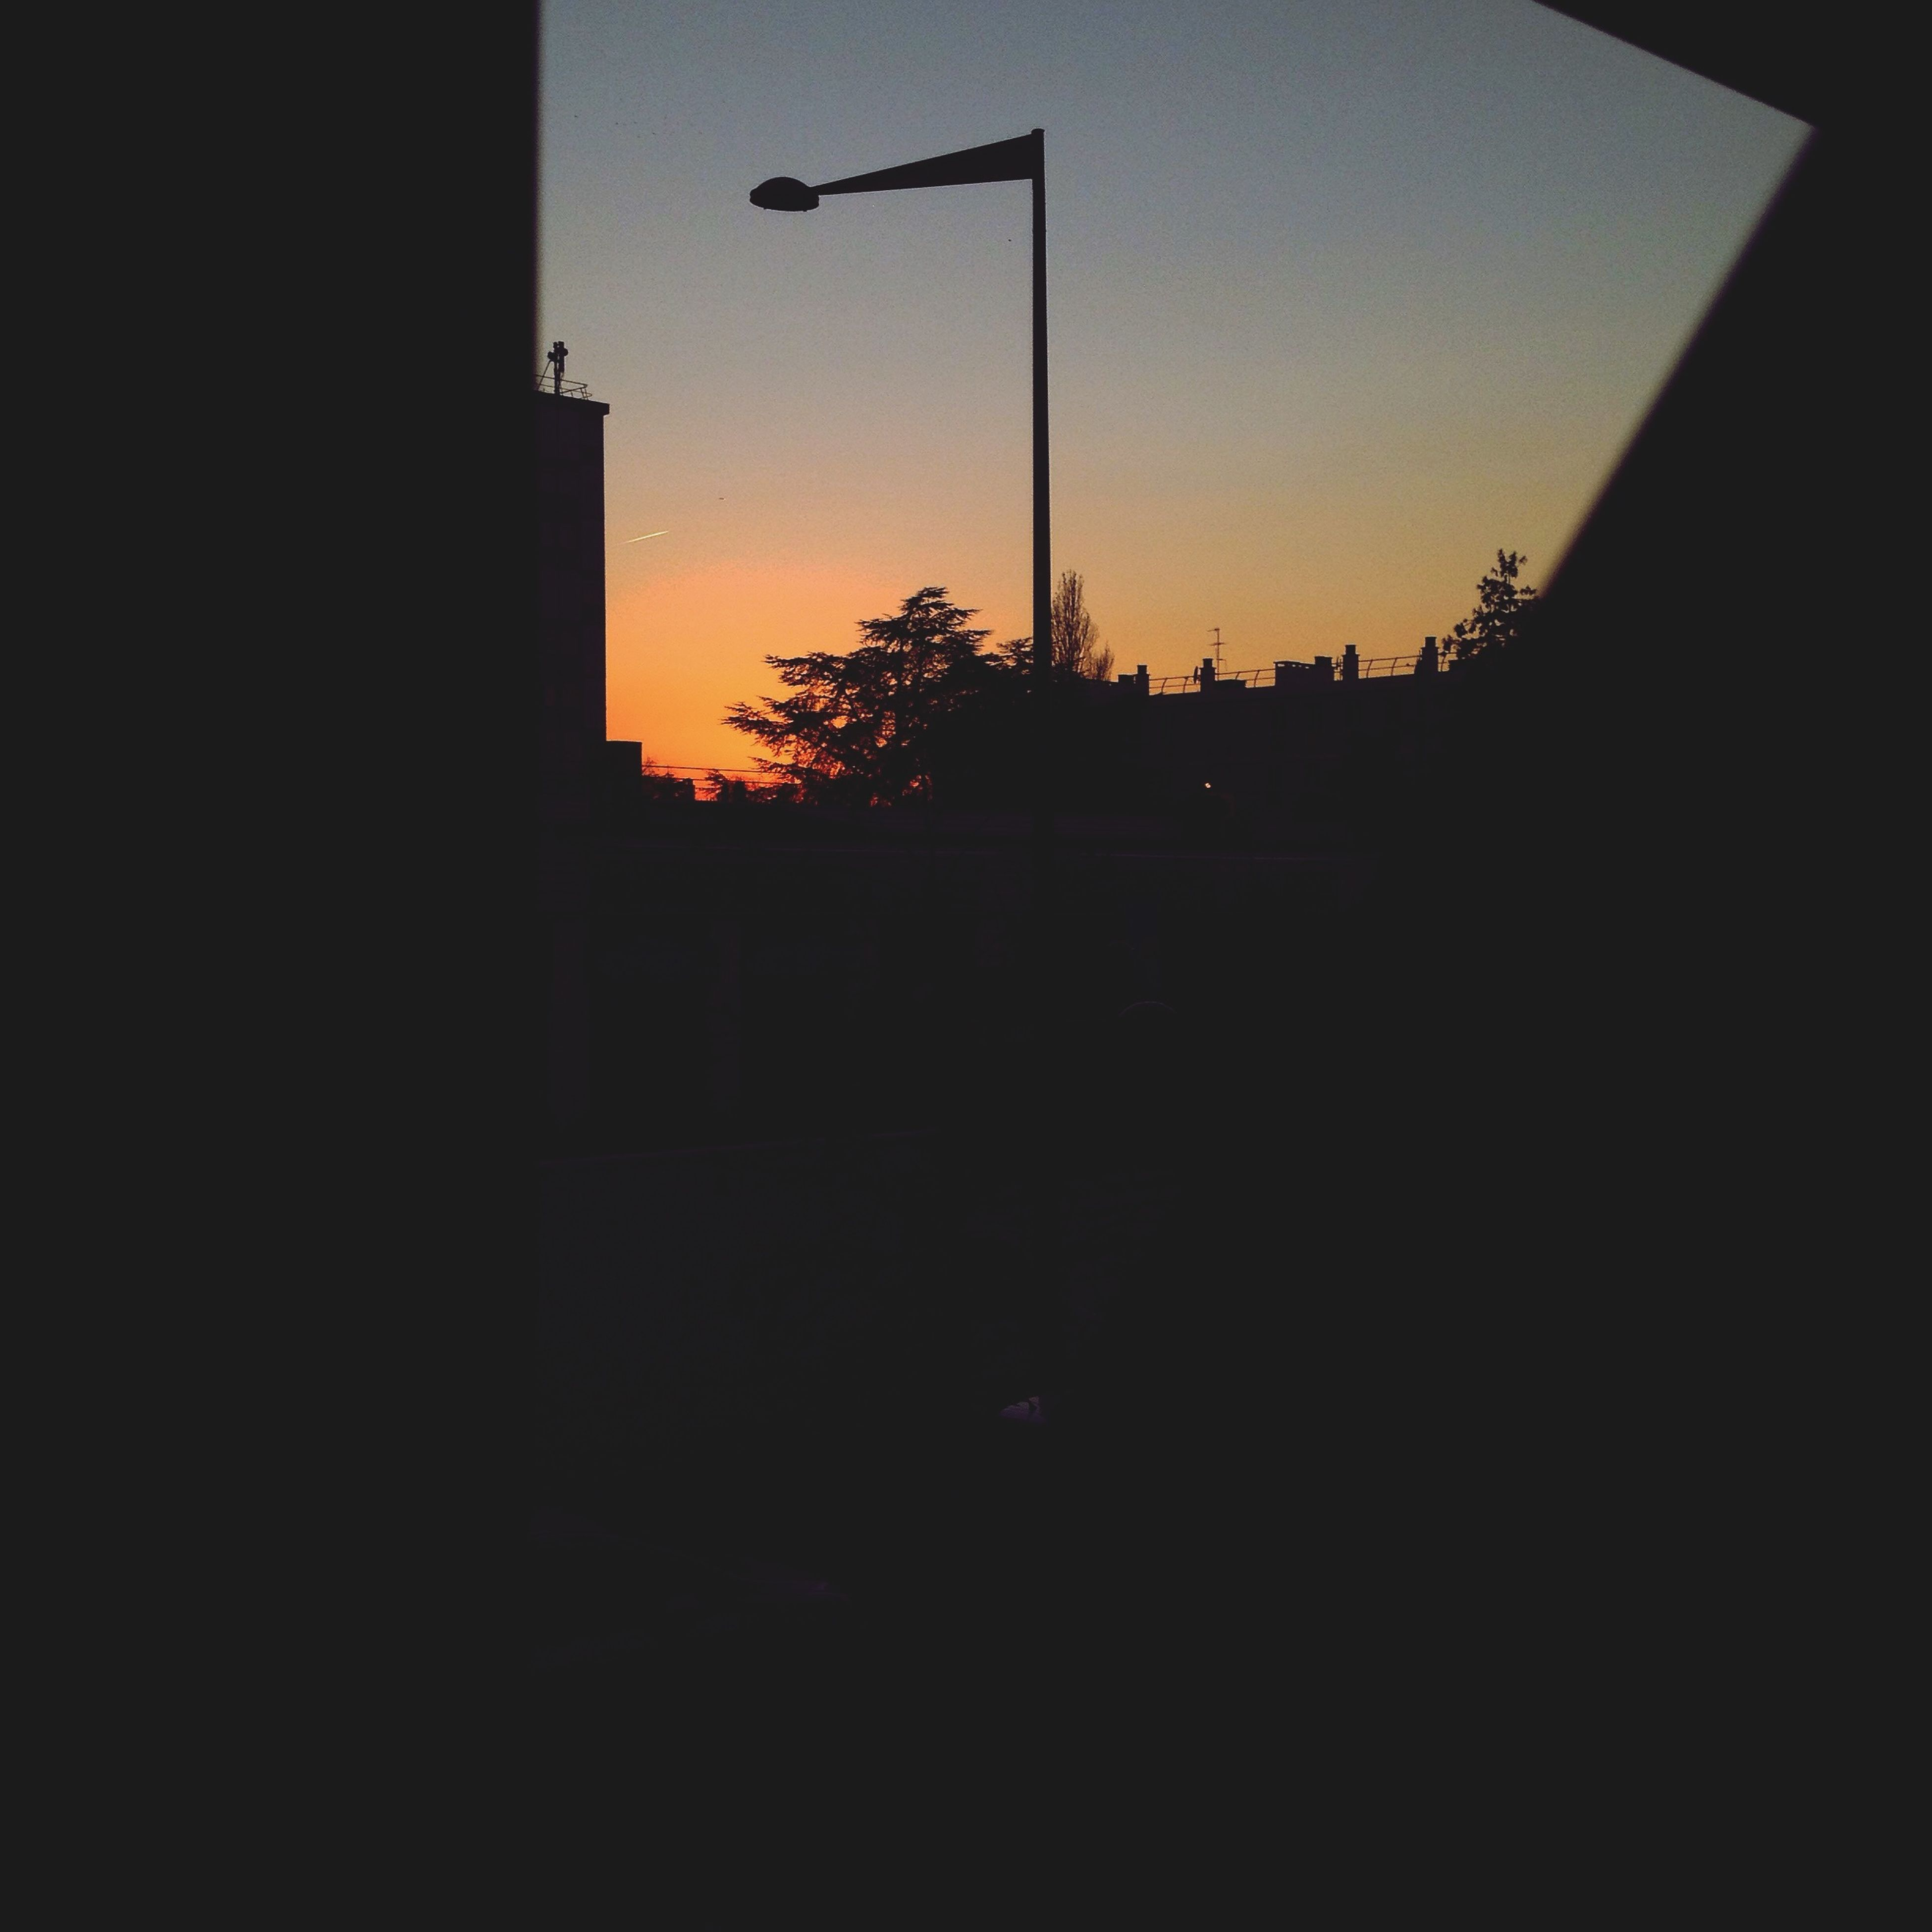 sunset, silhouette, built structure, architecture, building exterior, orange color, sky, dark, copy space, sun, clear sky, house, nature, no people, window, beauty in nature, sunlight, outdoors, scenics, dusk